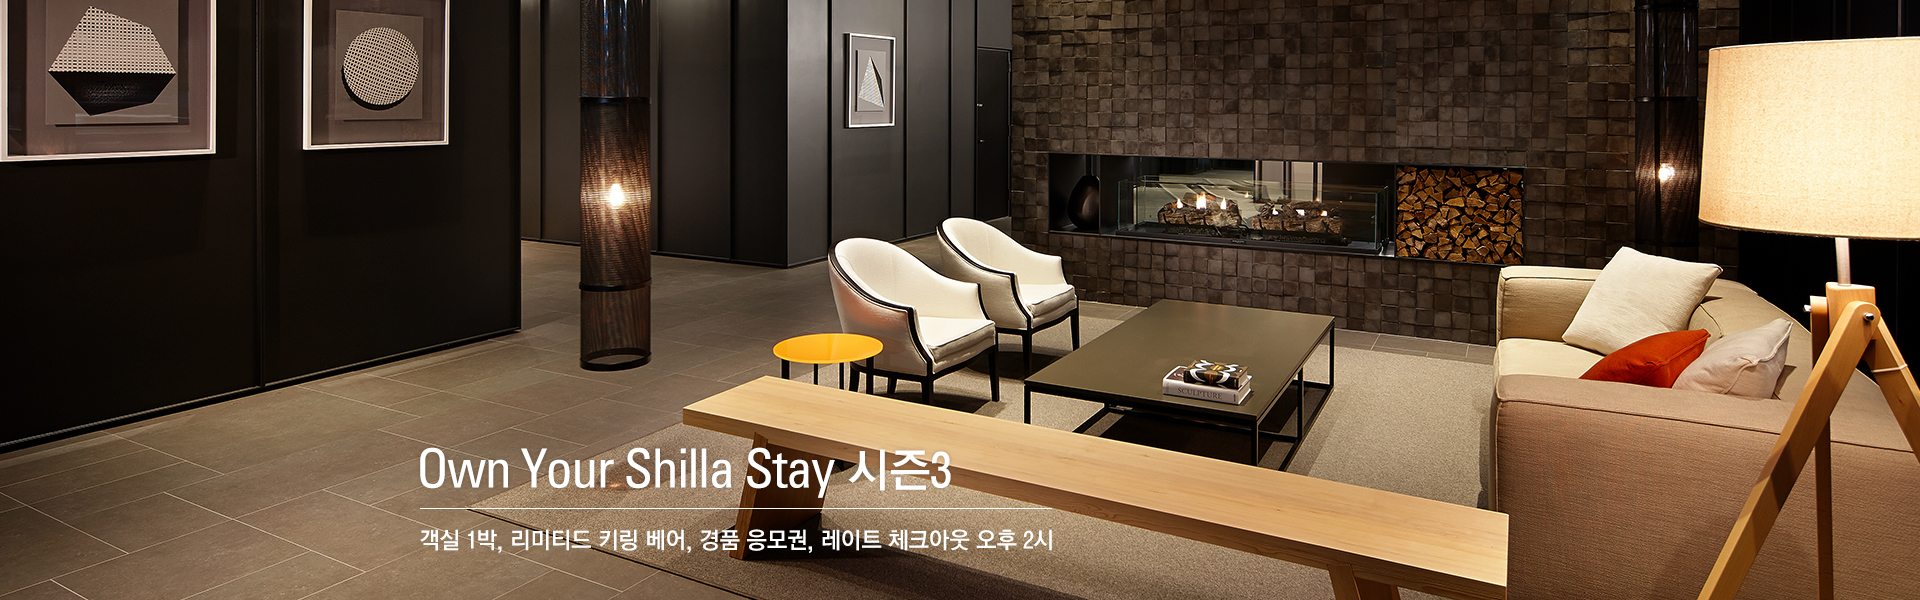 Own Your Shilla Stay 시즌3